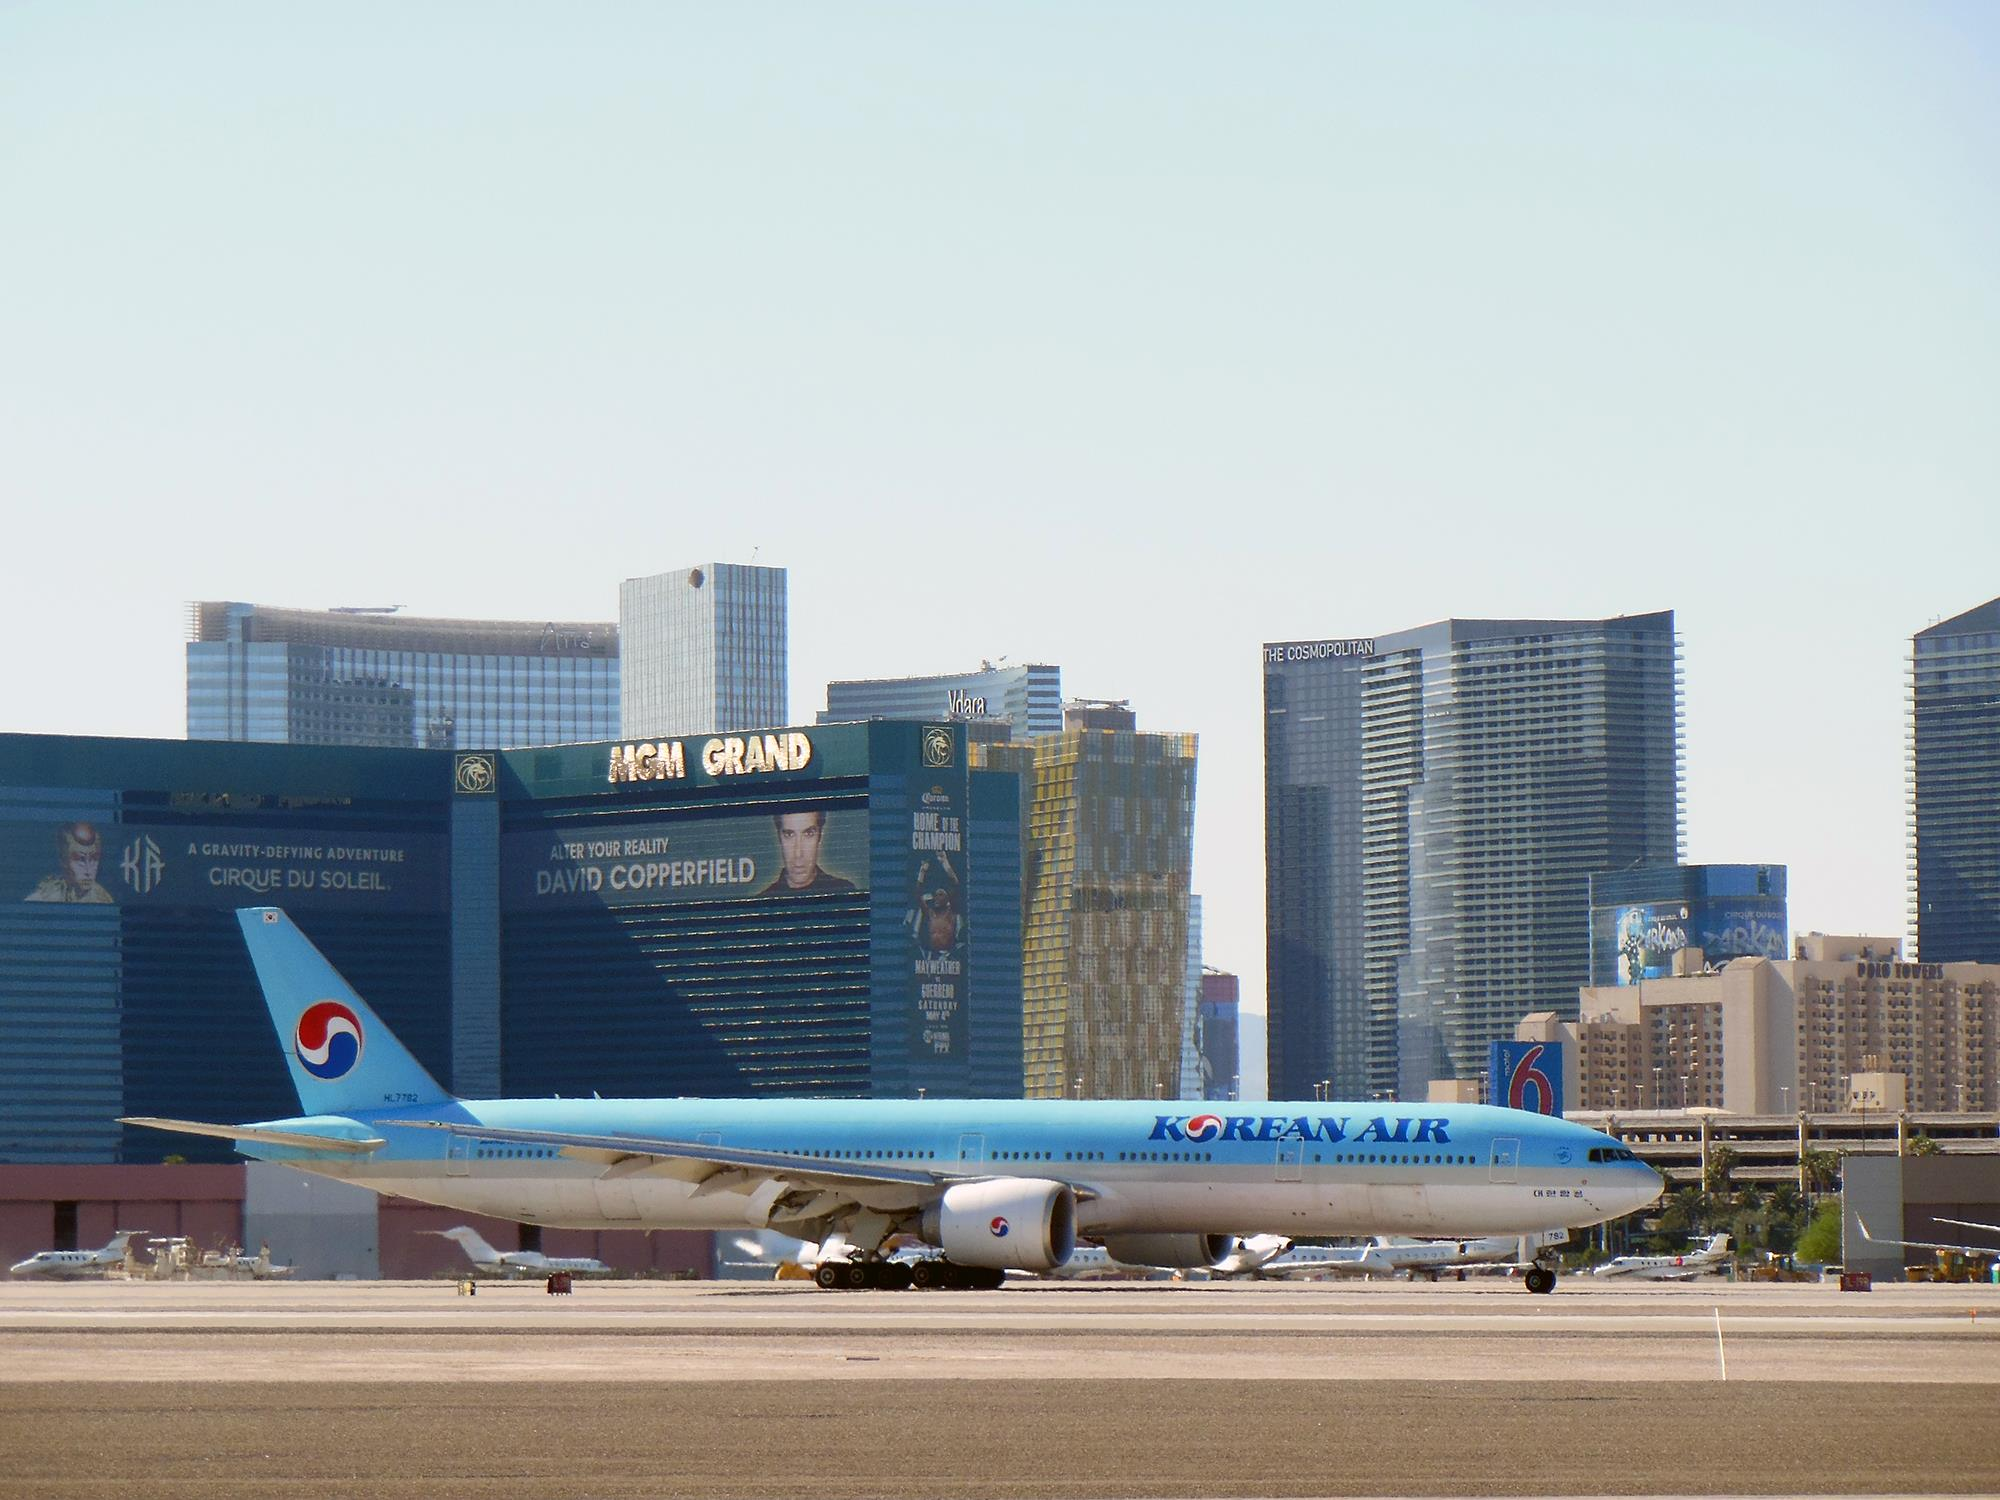 ภาพจาก Facebook McCarran Airport